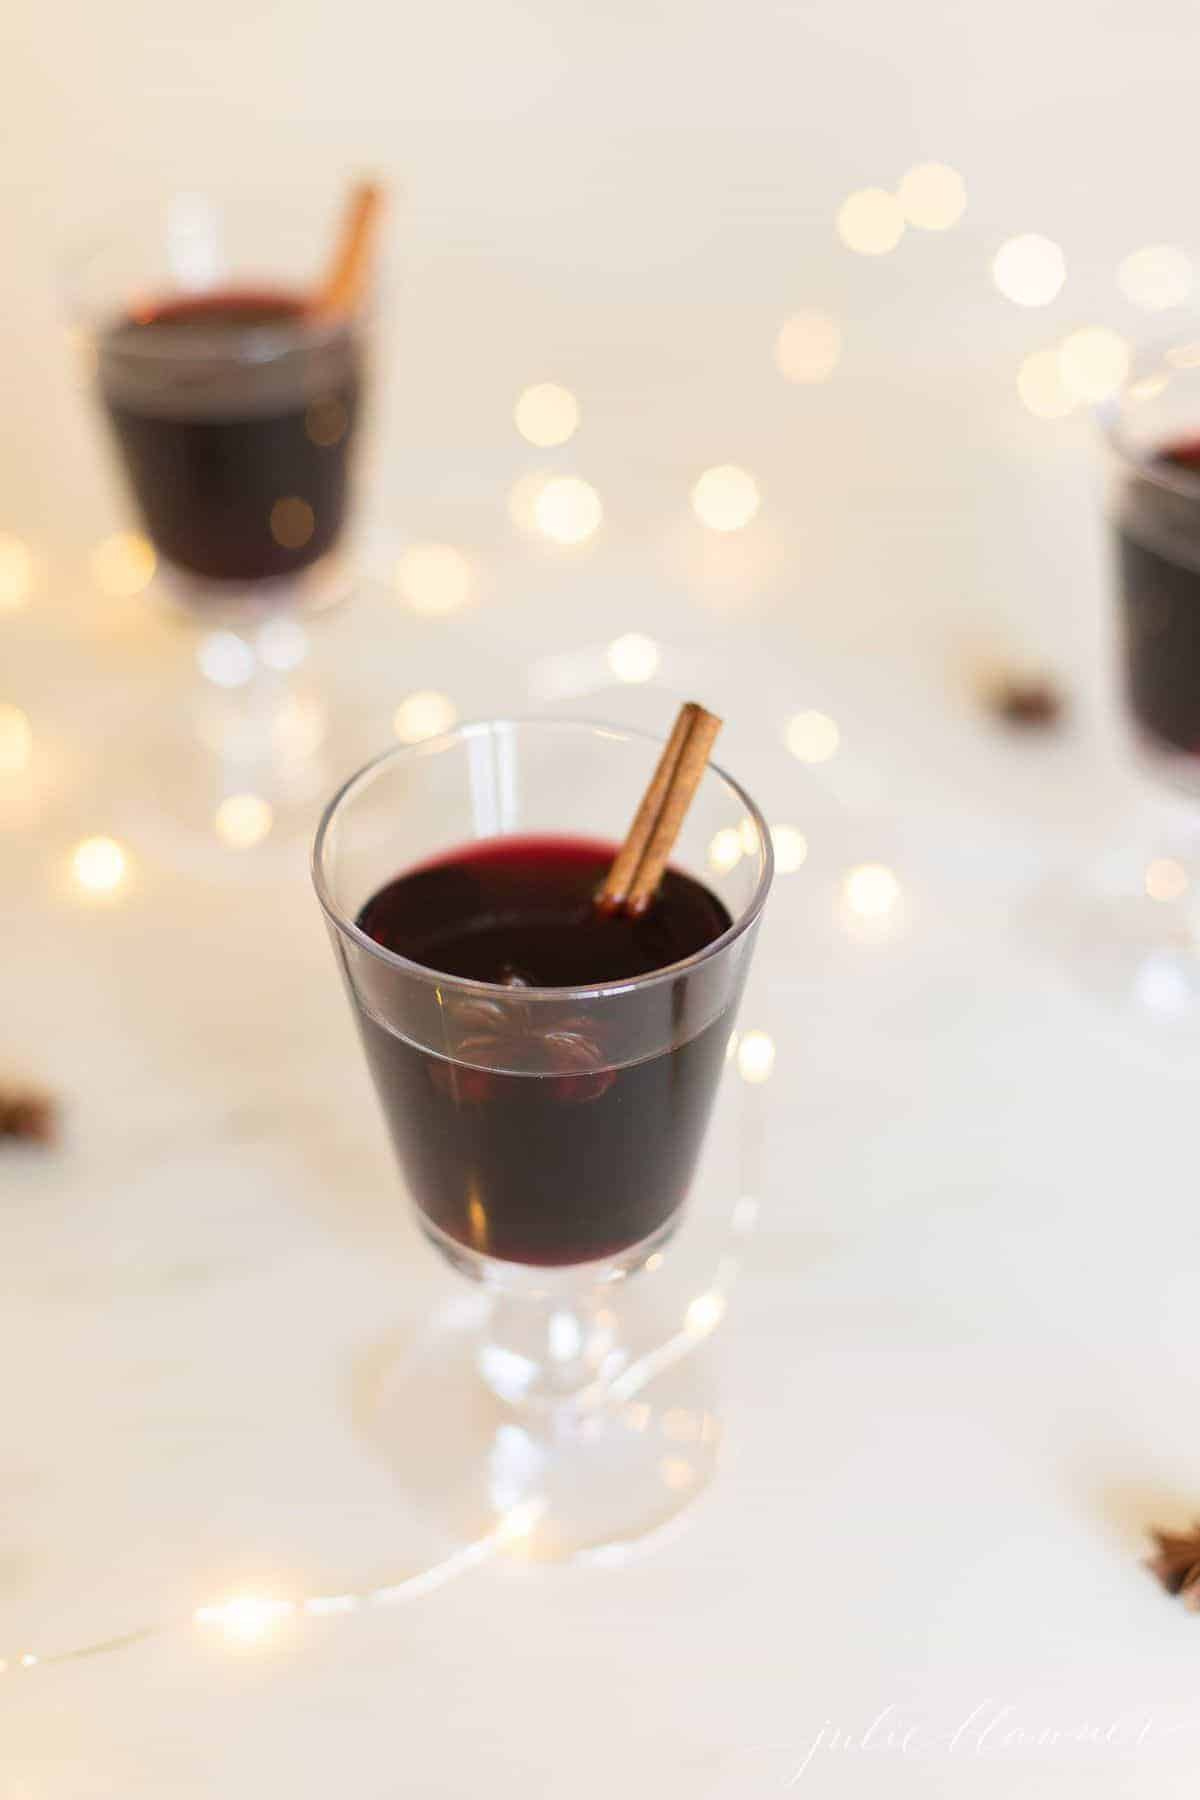 Glasses full of a gluhwein recipe, sparkling lights scattered around.